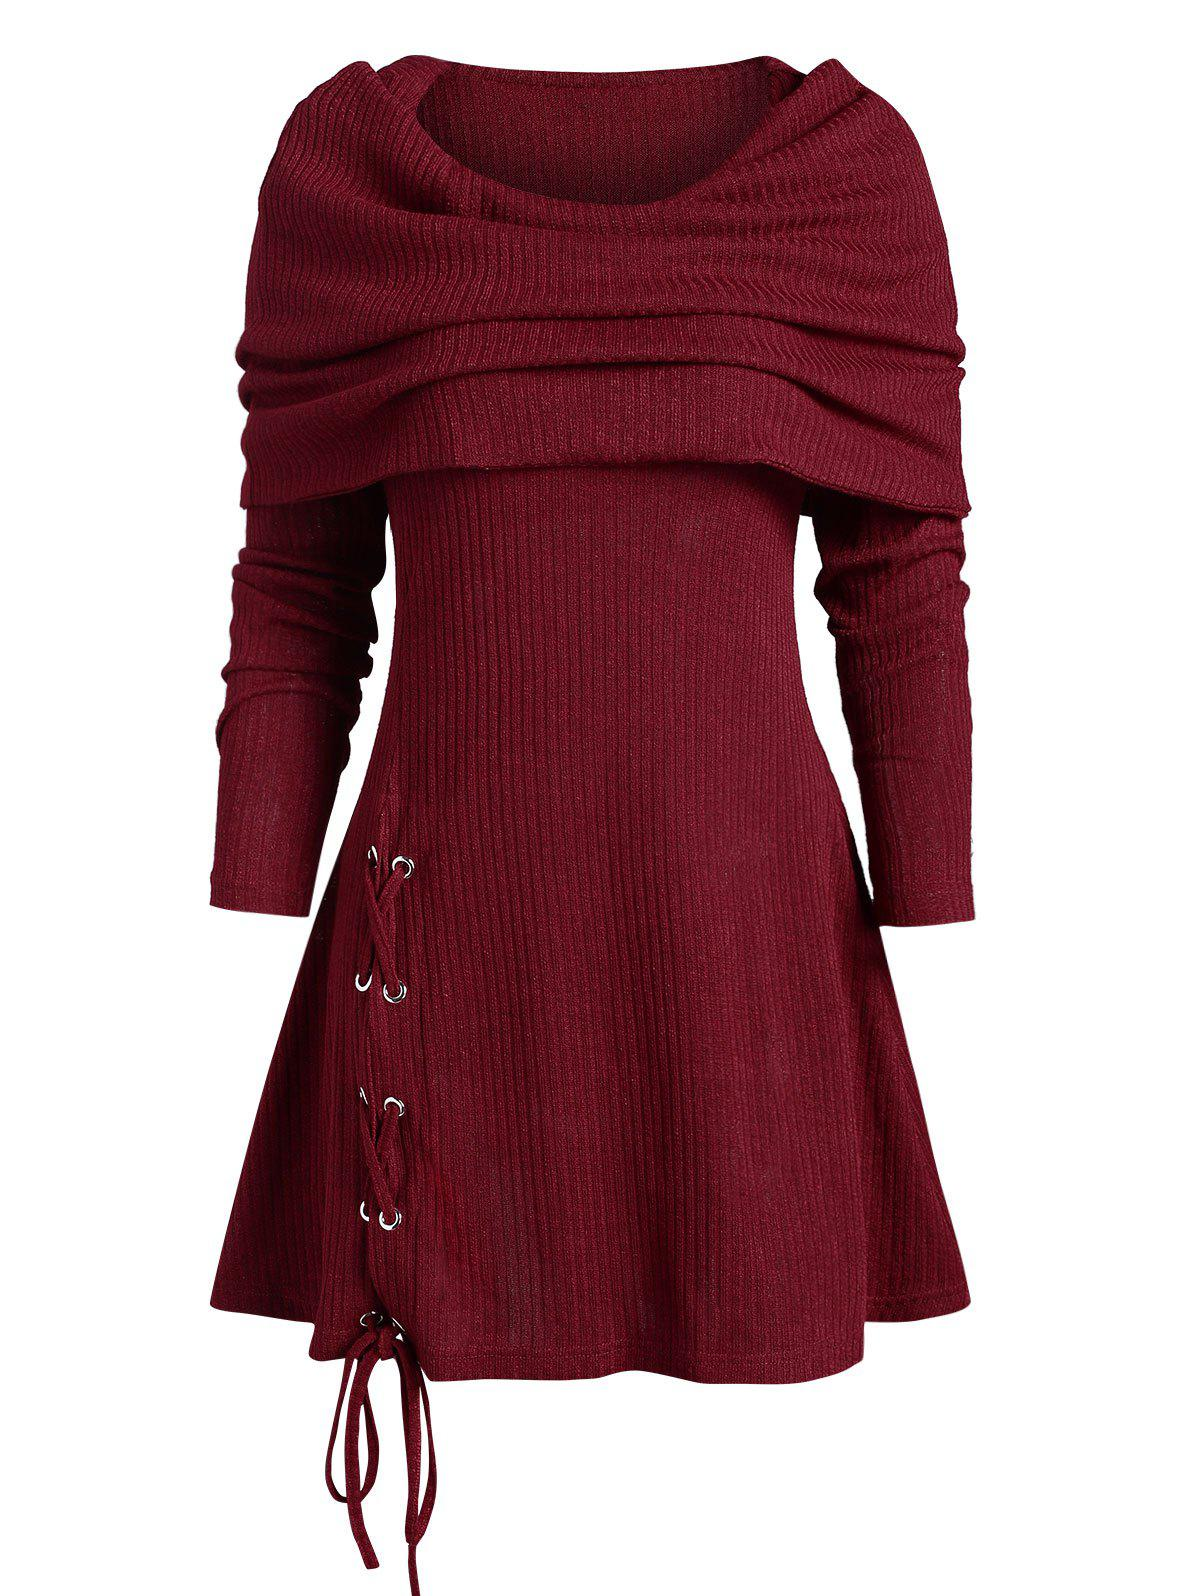 Multiway Foldover Lace Up Long Knitwear - DEEP RED XL